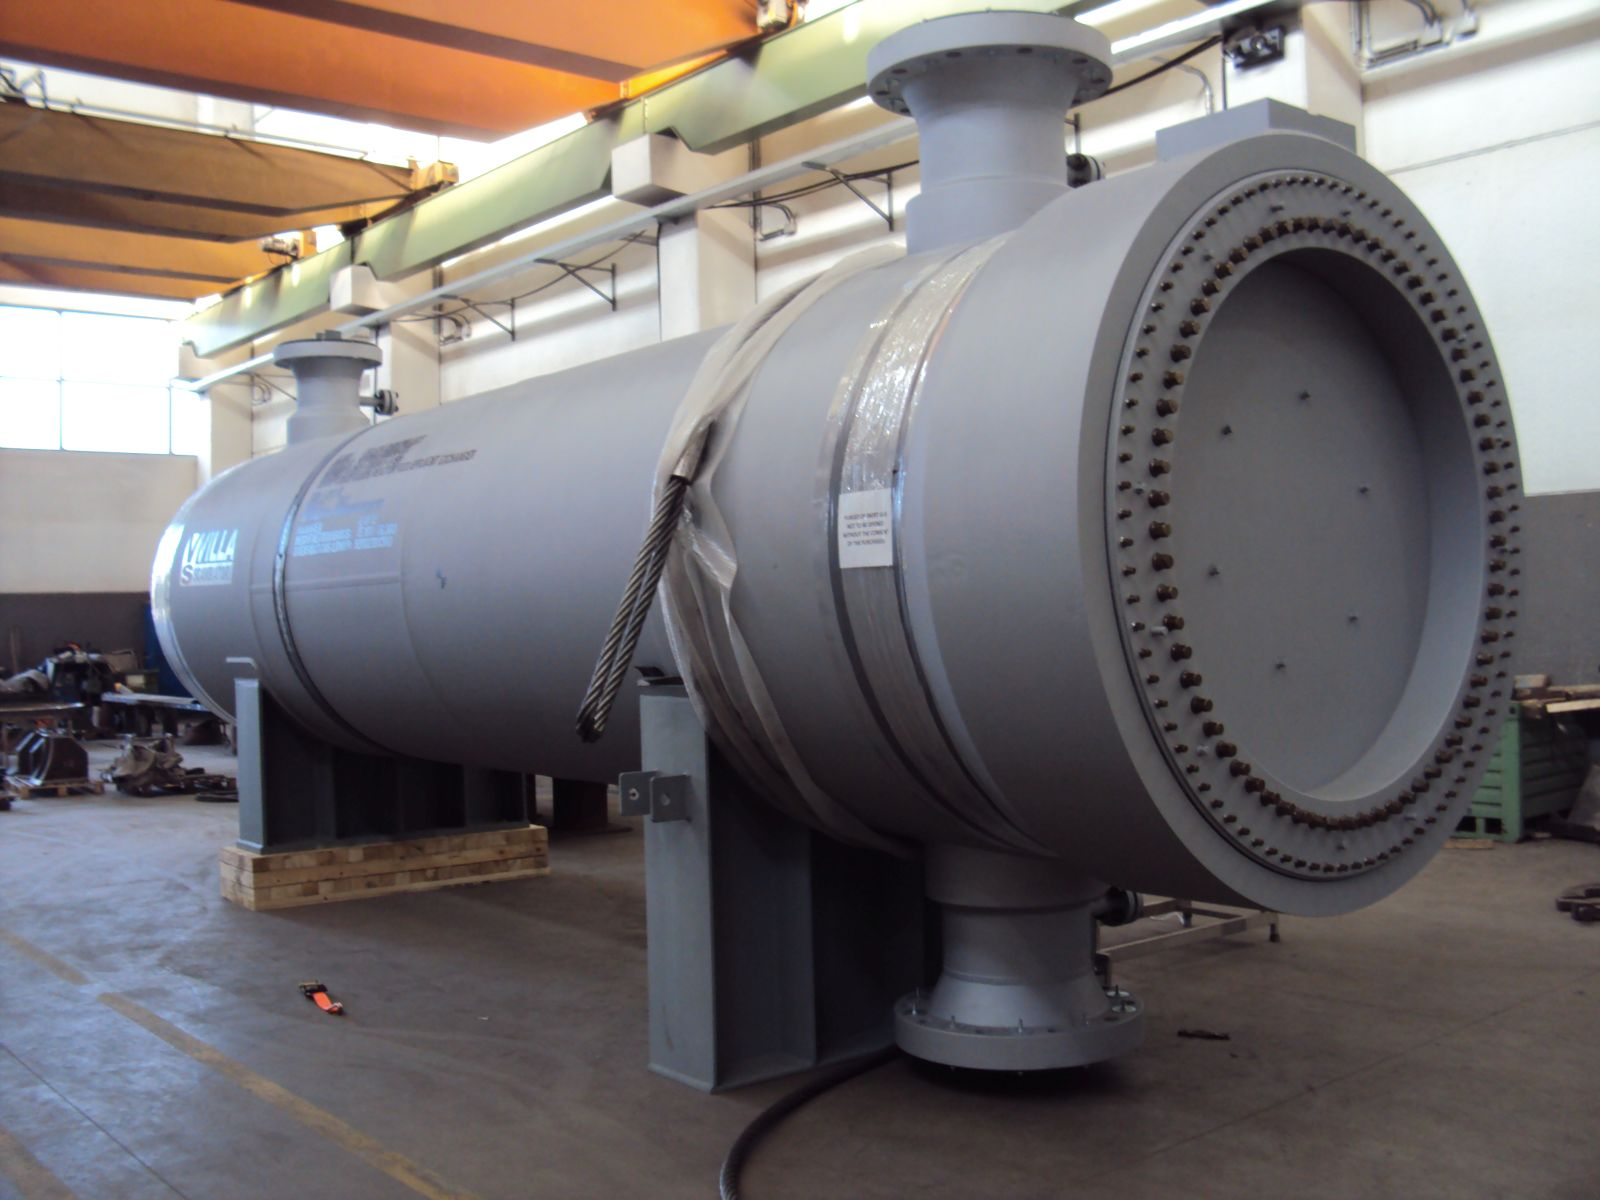 Breech Lock Heat Exchangers Villa Scambiatori